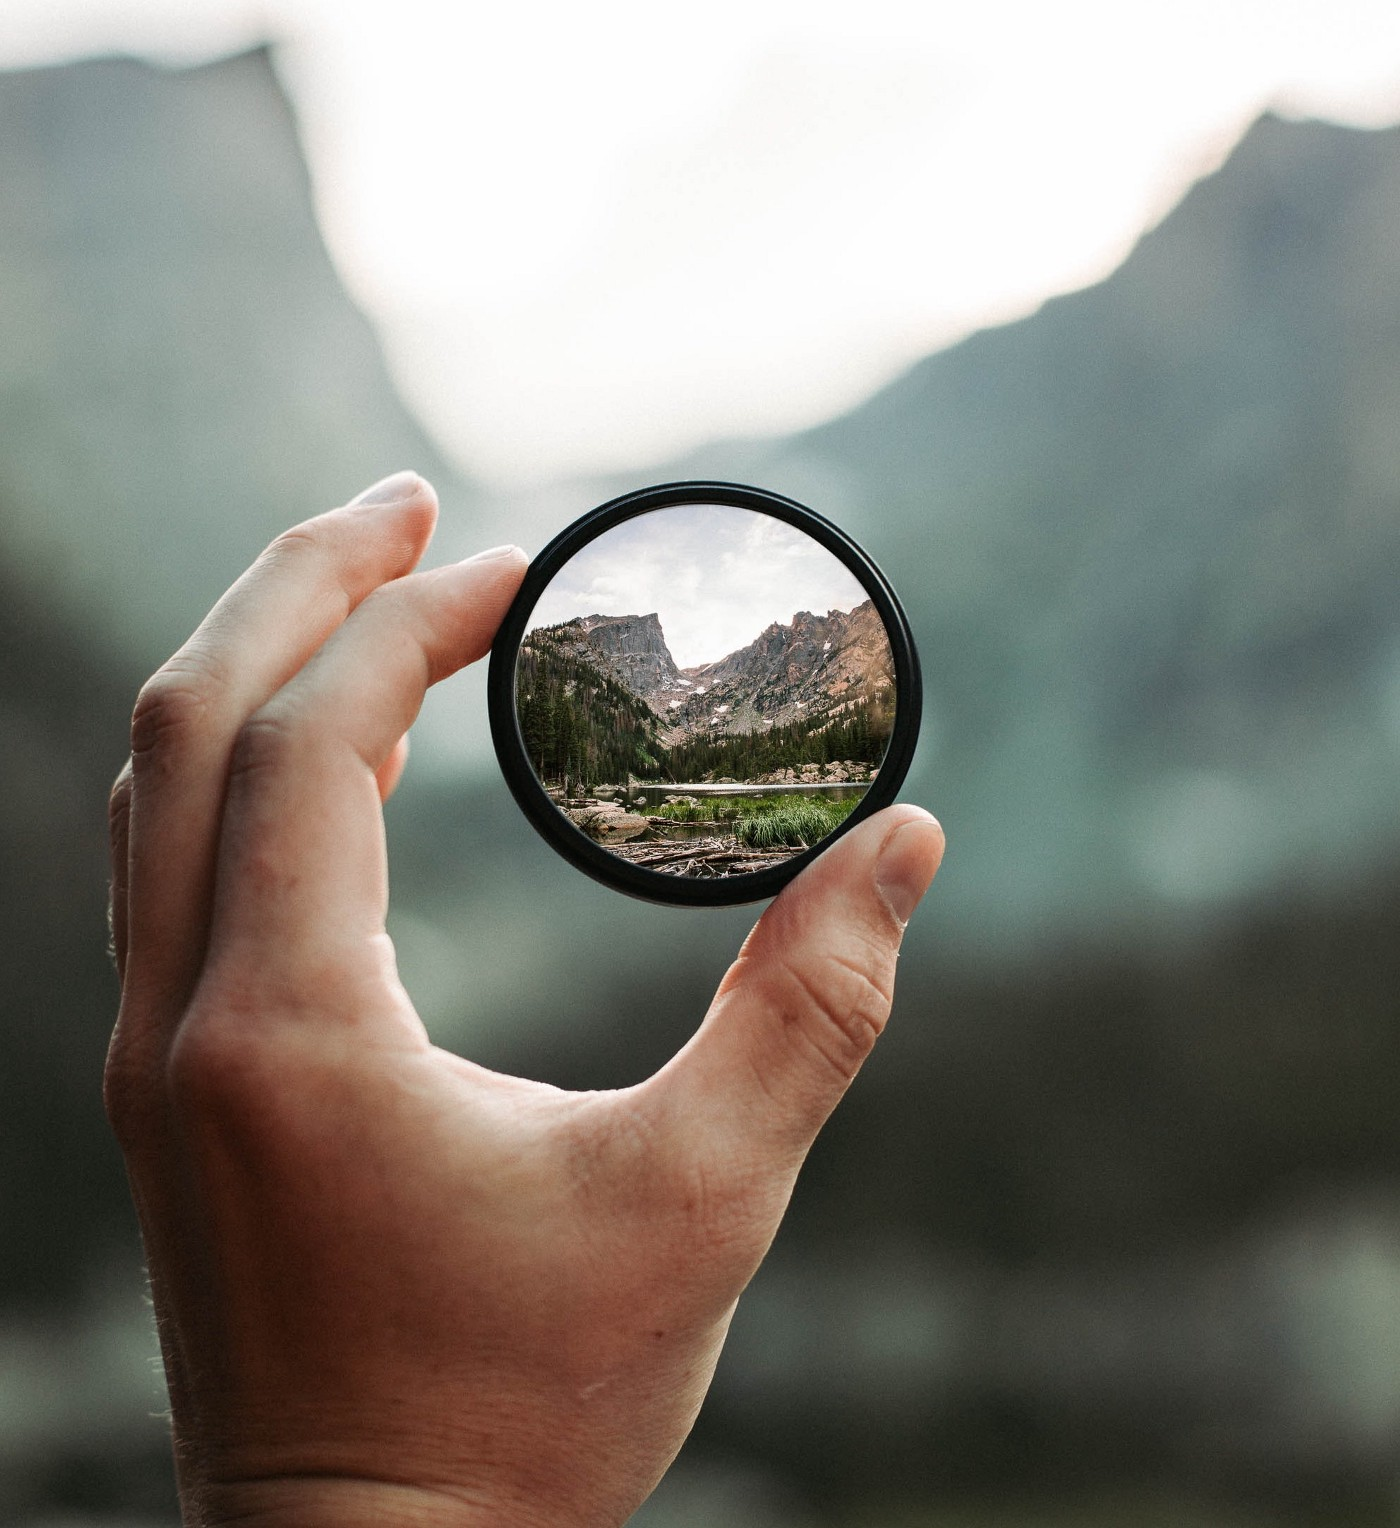 A hand holds up a magnifying glass to bring a lush, green landscape into focus.